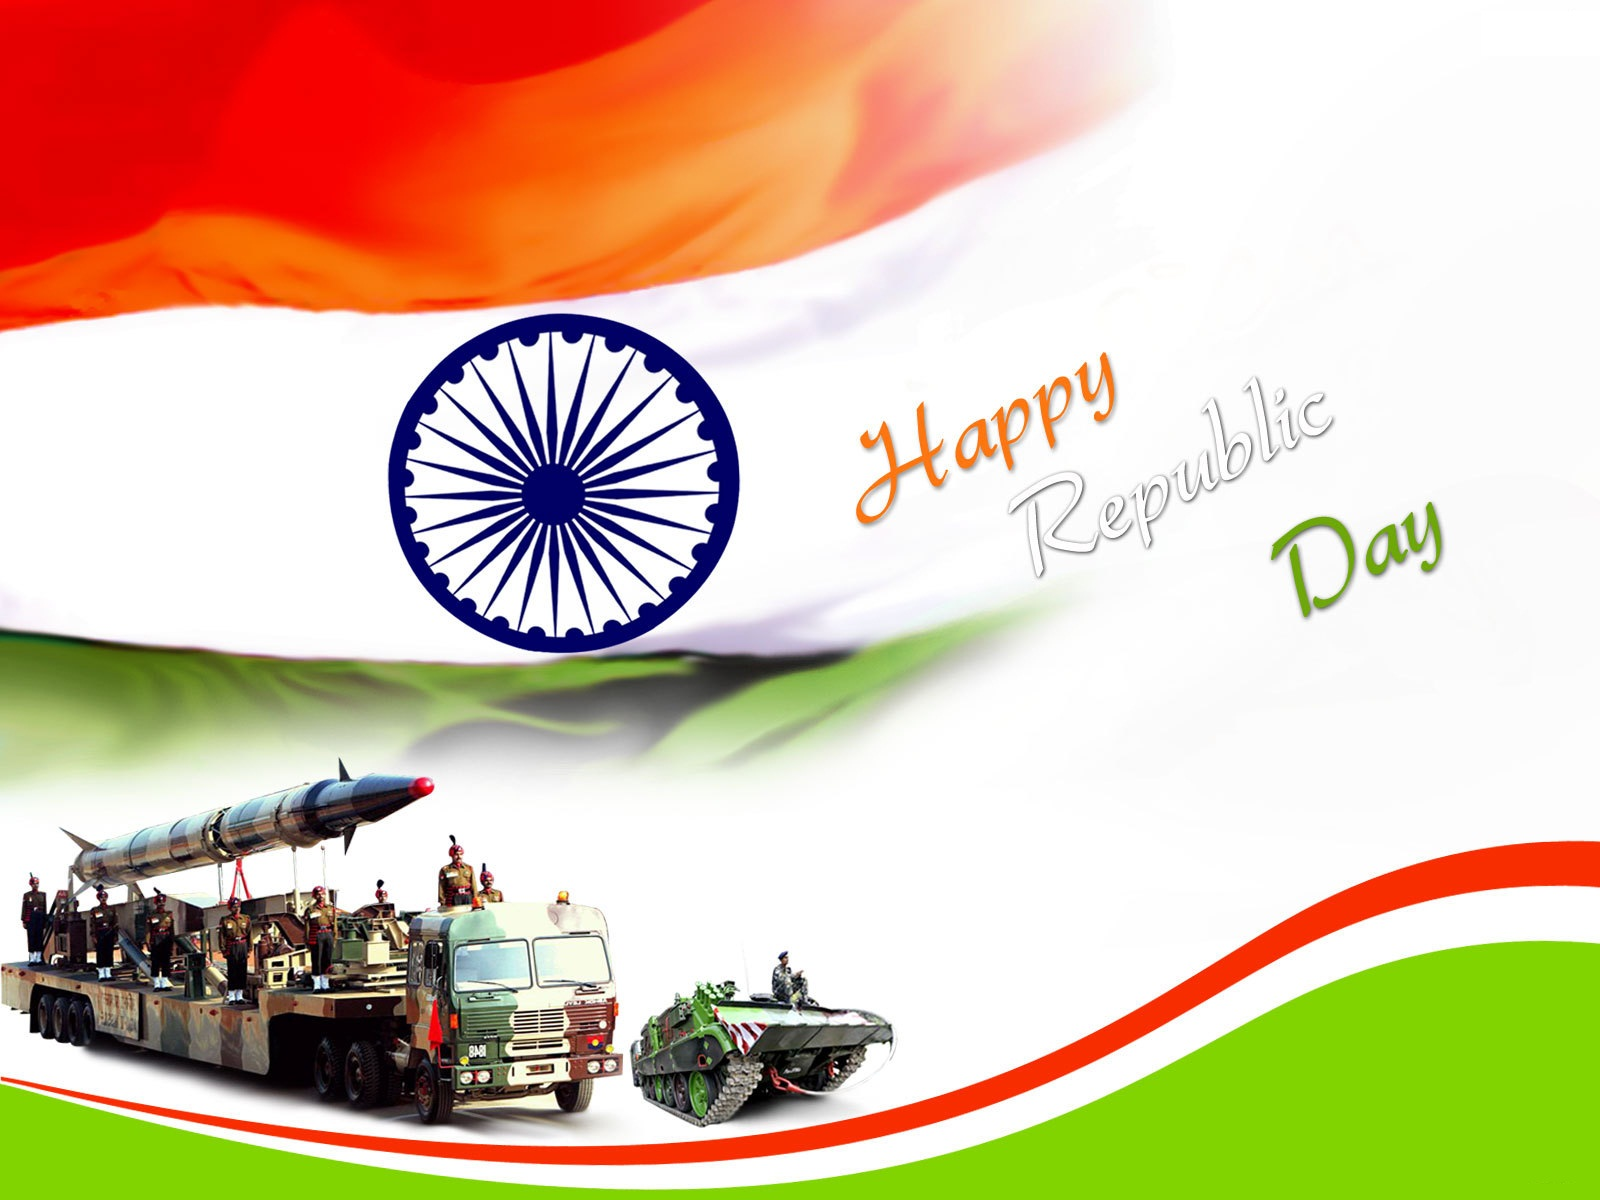 Republic Day Indian Flag Wallpaper